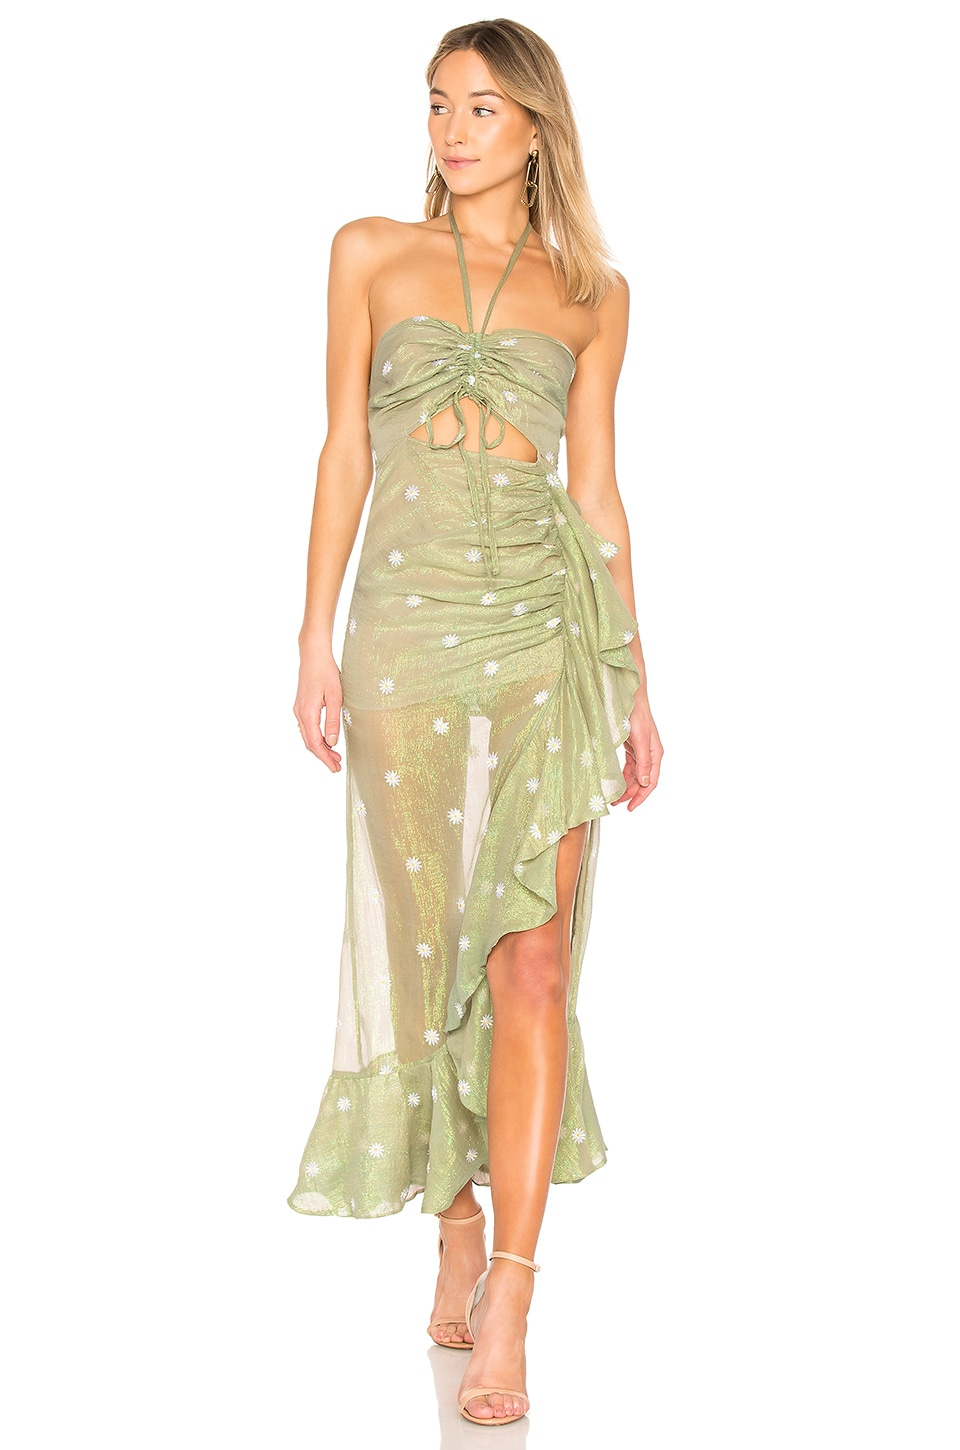 X by NBD Bellisima Dress in Green